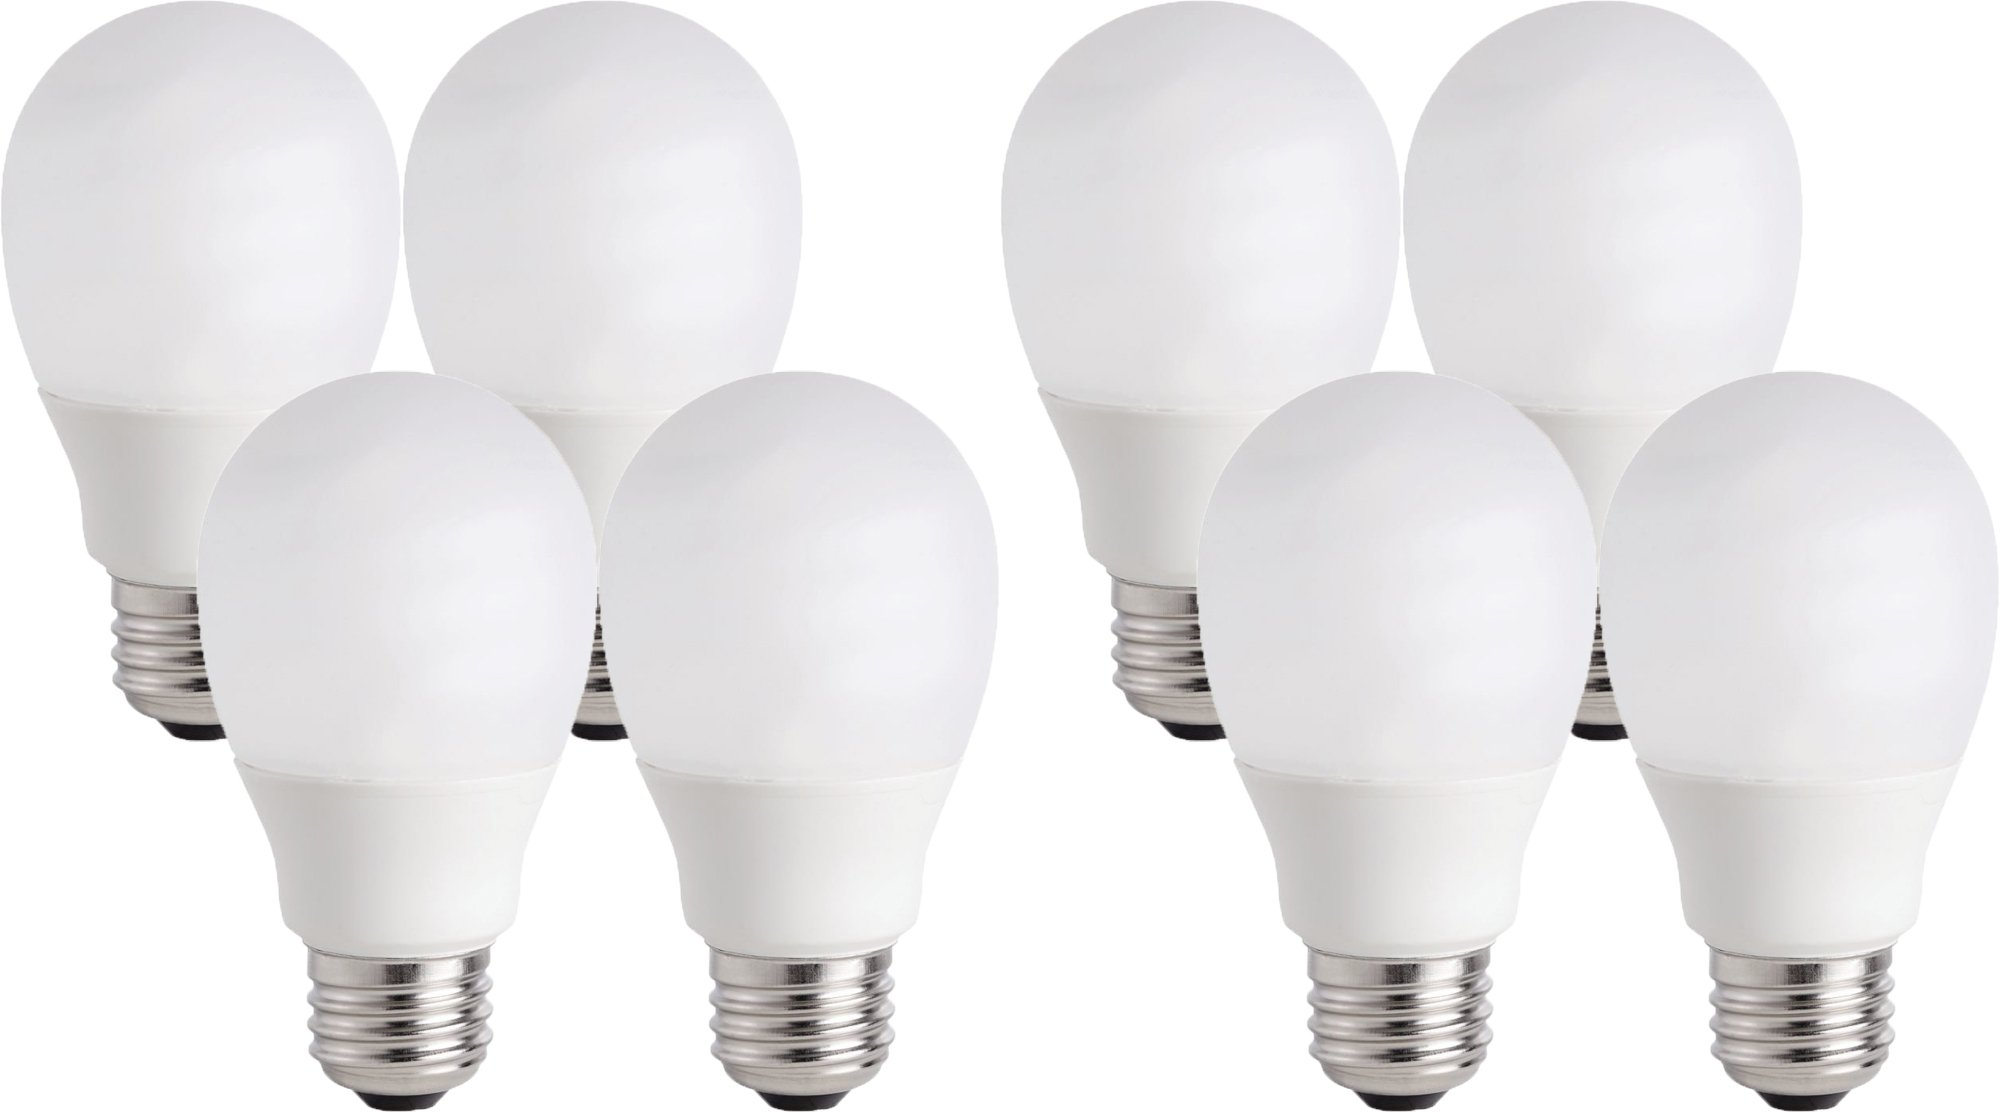 Philips 14W (60W Equivalent) CFL Shatter Resistant Light Bulb with 9.1 Year Life (8 Bulbs)